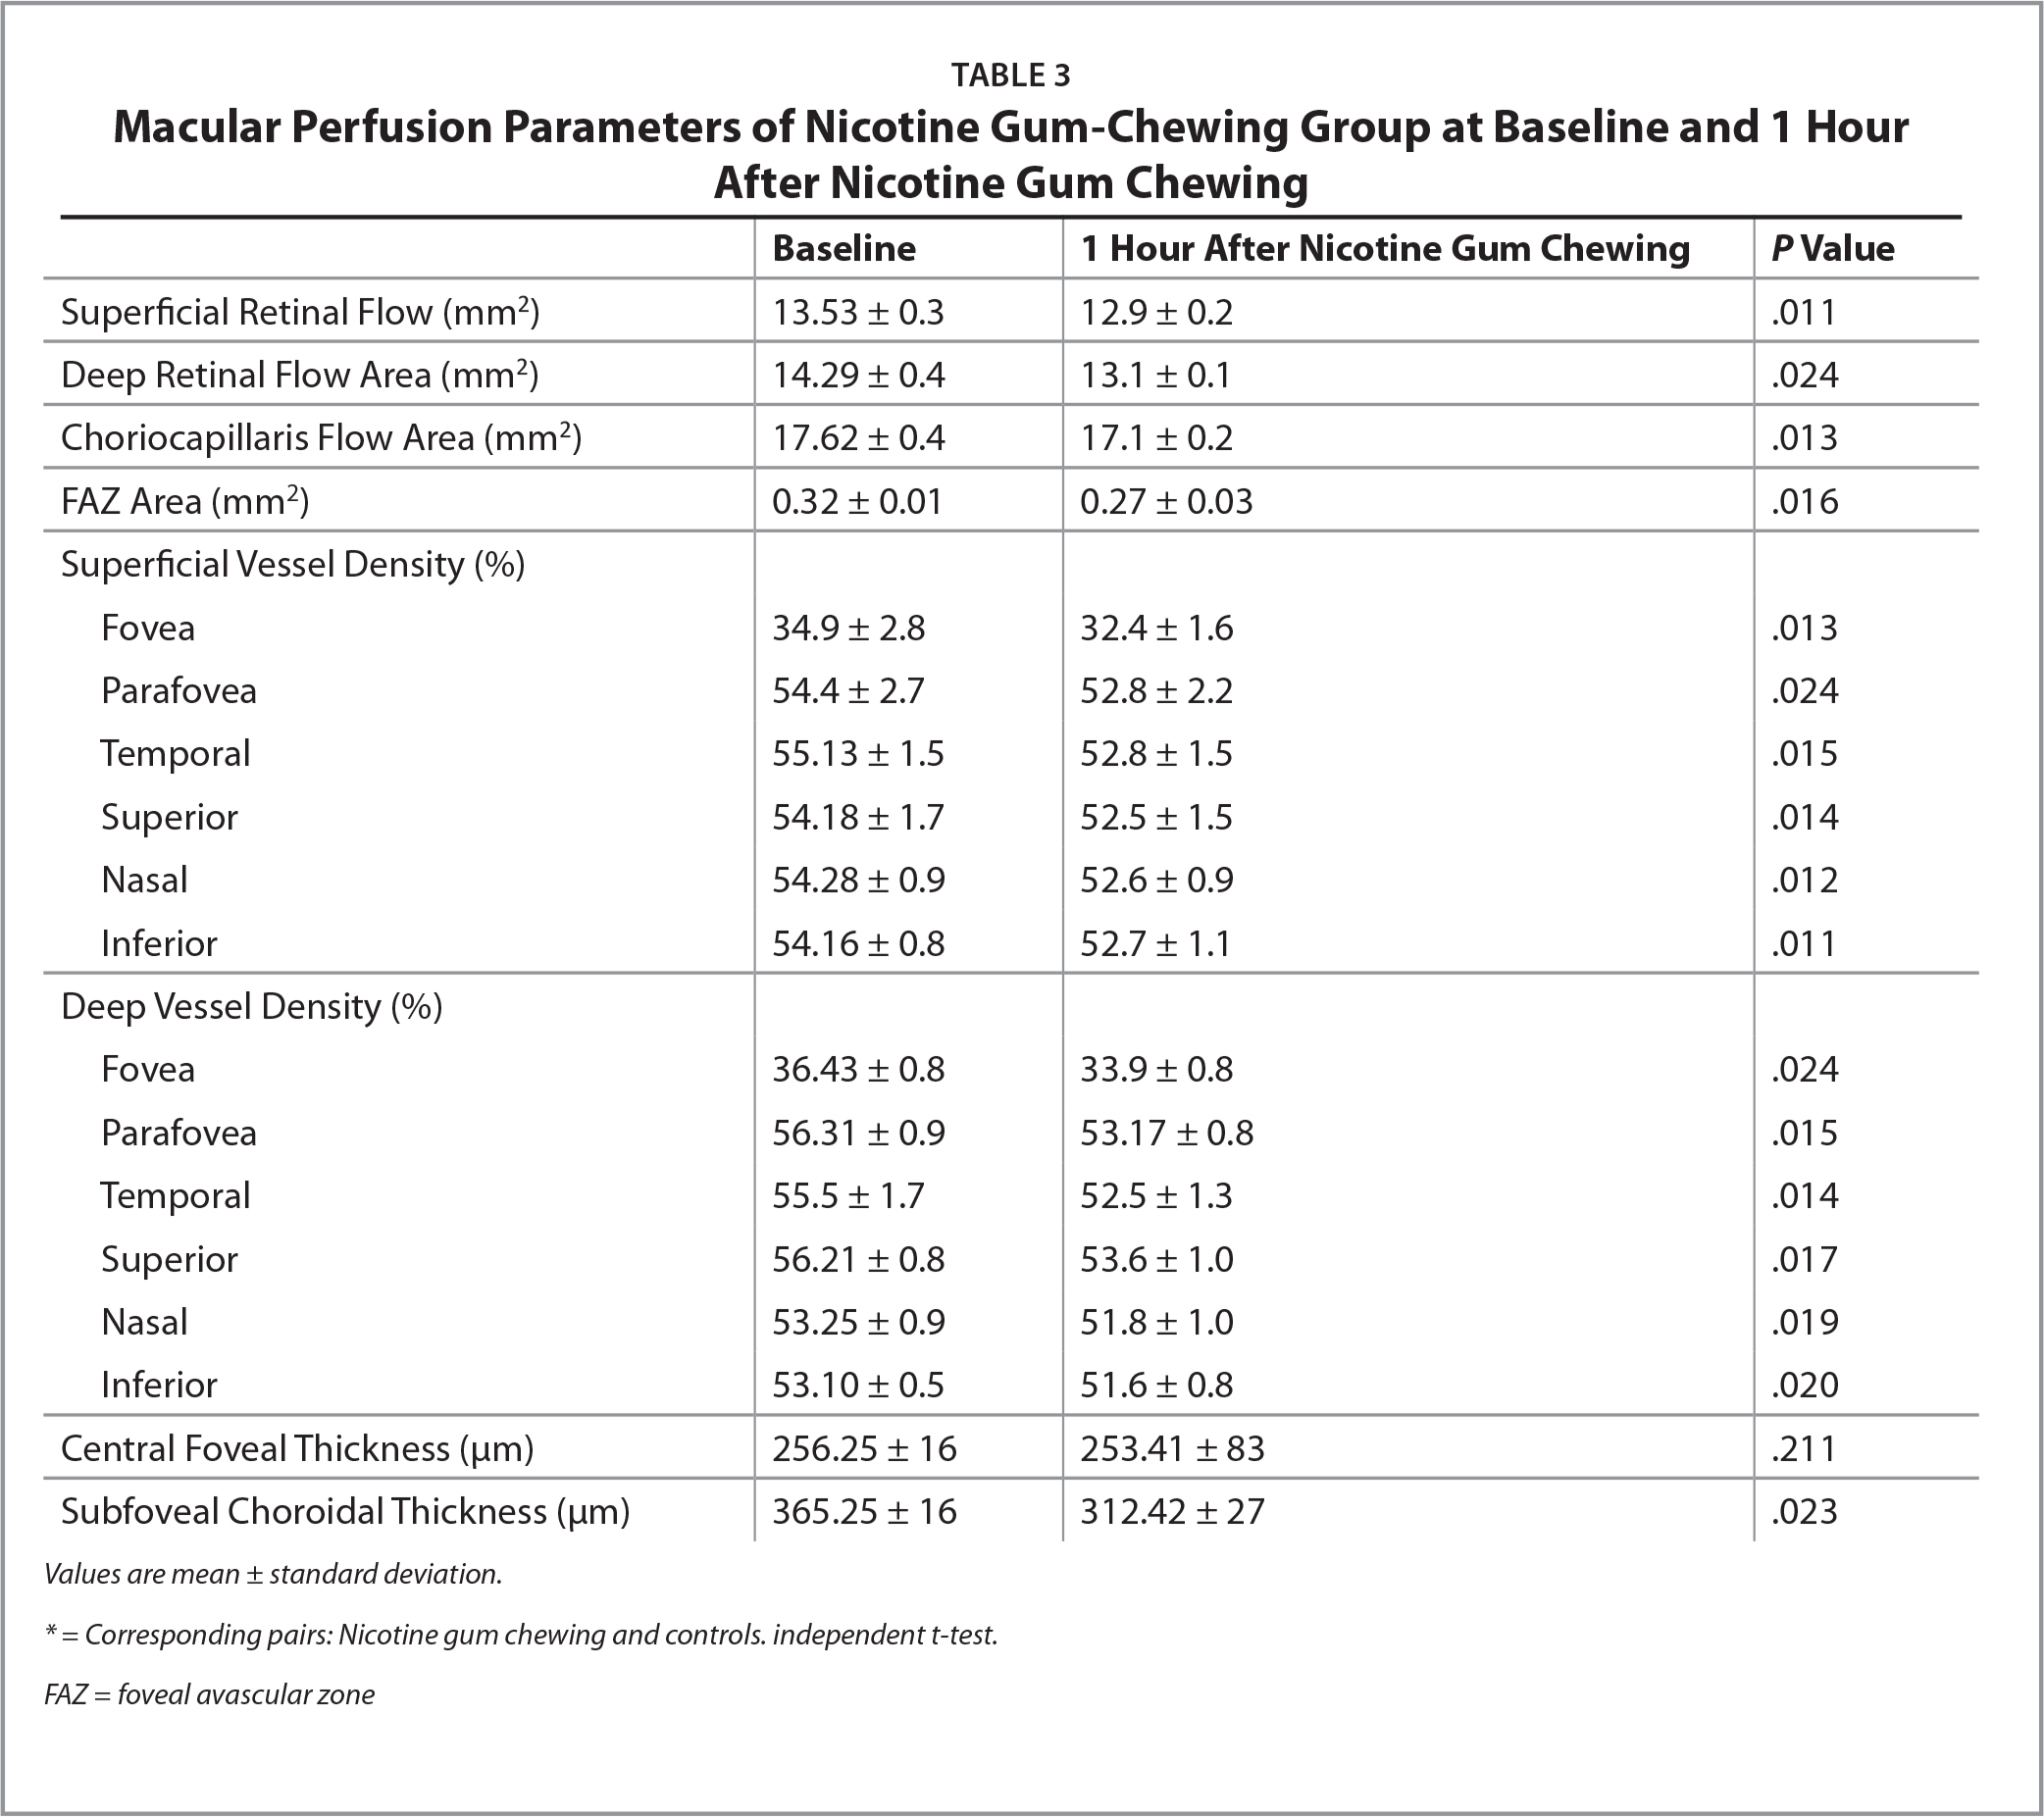 Macular Perfusion Parameters of Nicotine Gum-Chewing Group at Baseline and 1 Hour After Nicotine Gum Chewing